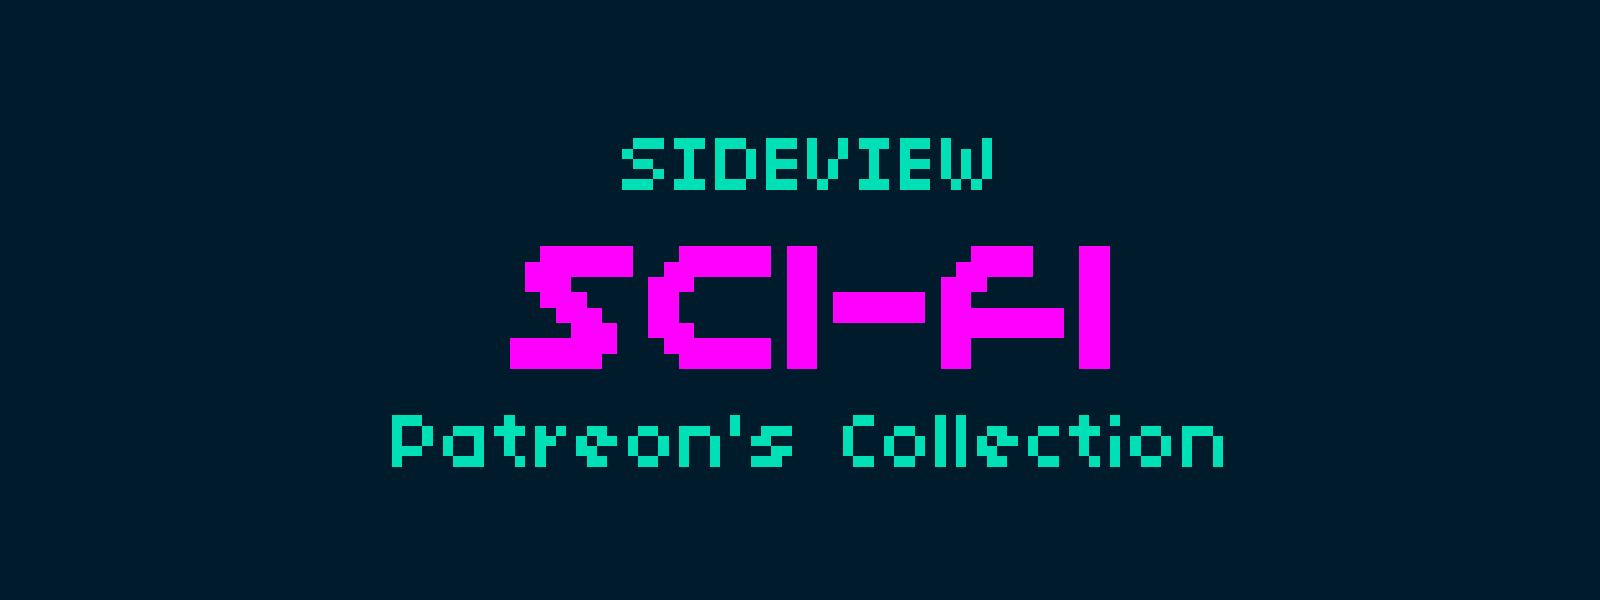 Sideview Sci-Fi - Patreon Collection